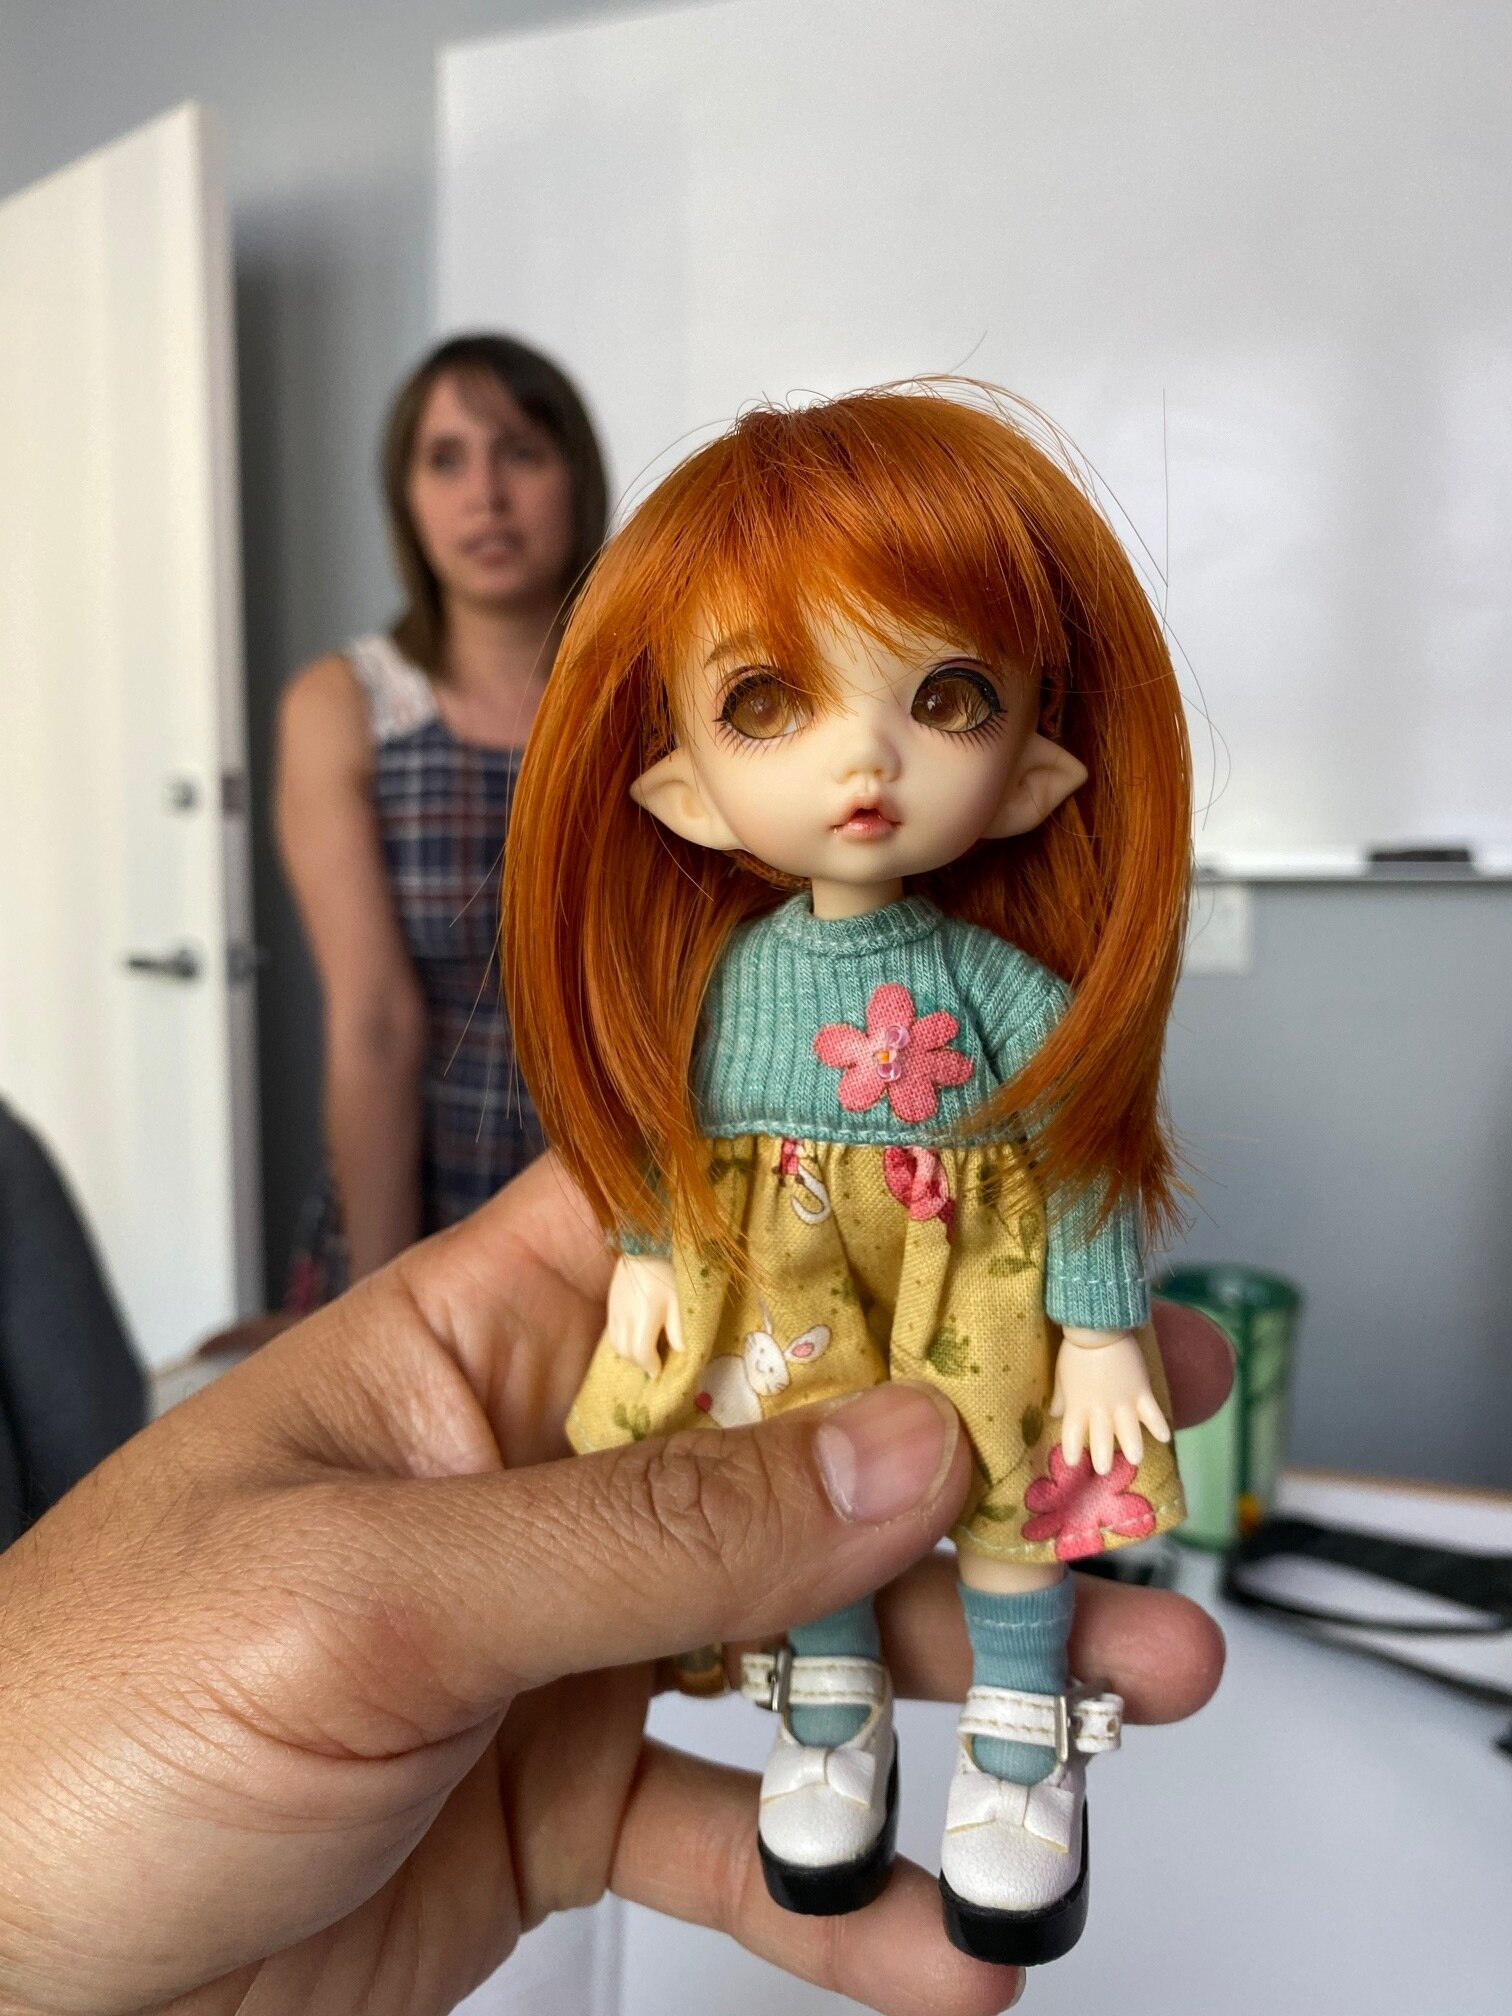 Debbie Colon, our Project Manager shows her passion of Handcrafting Dolls